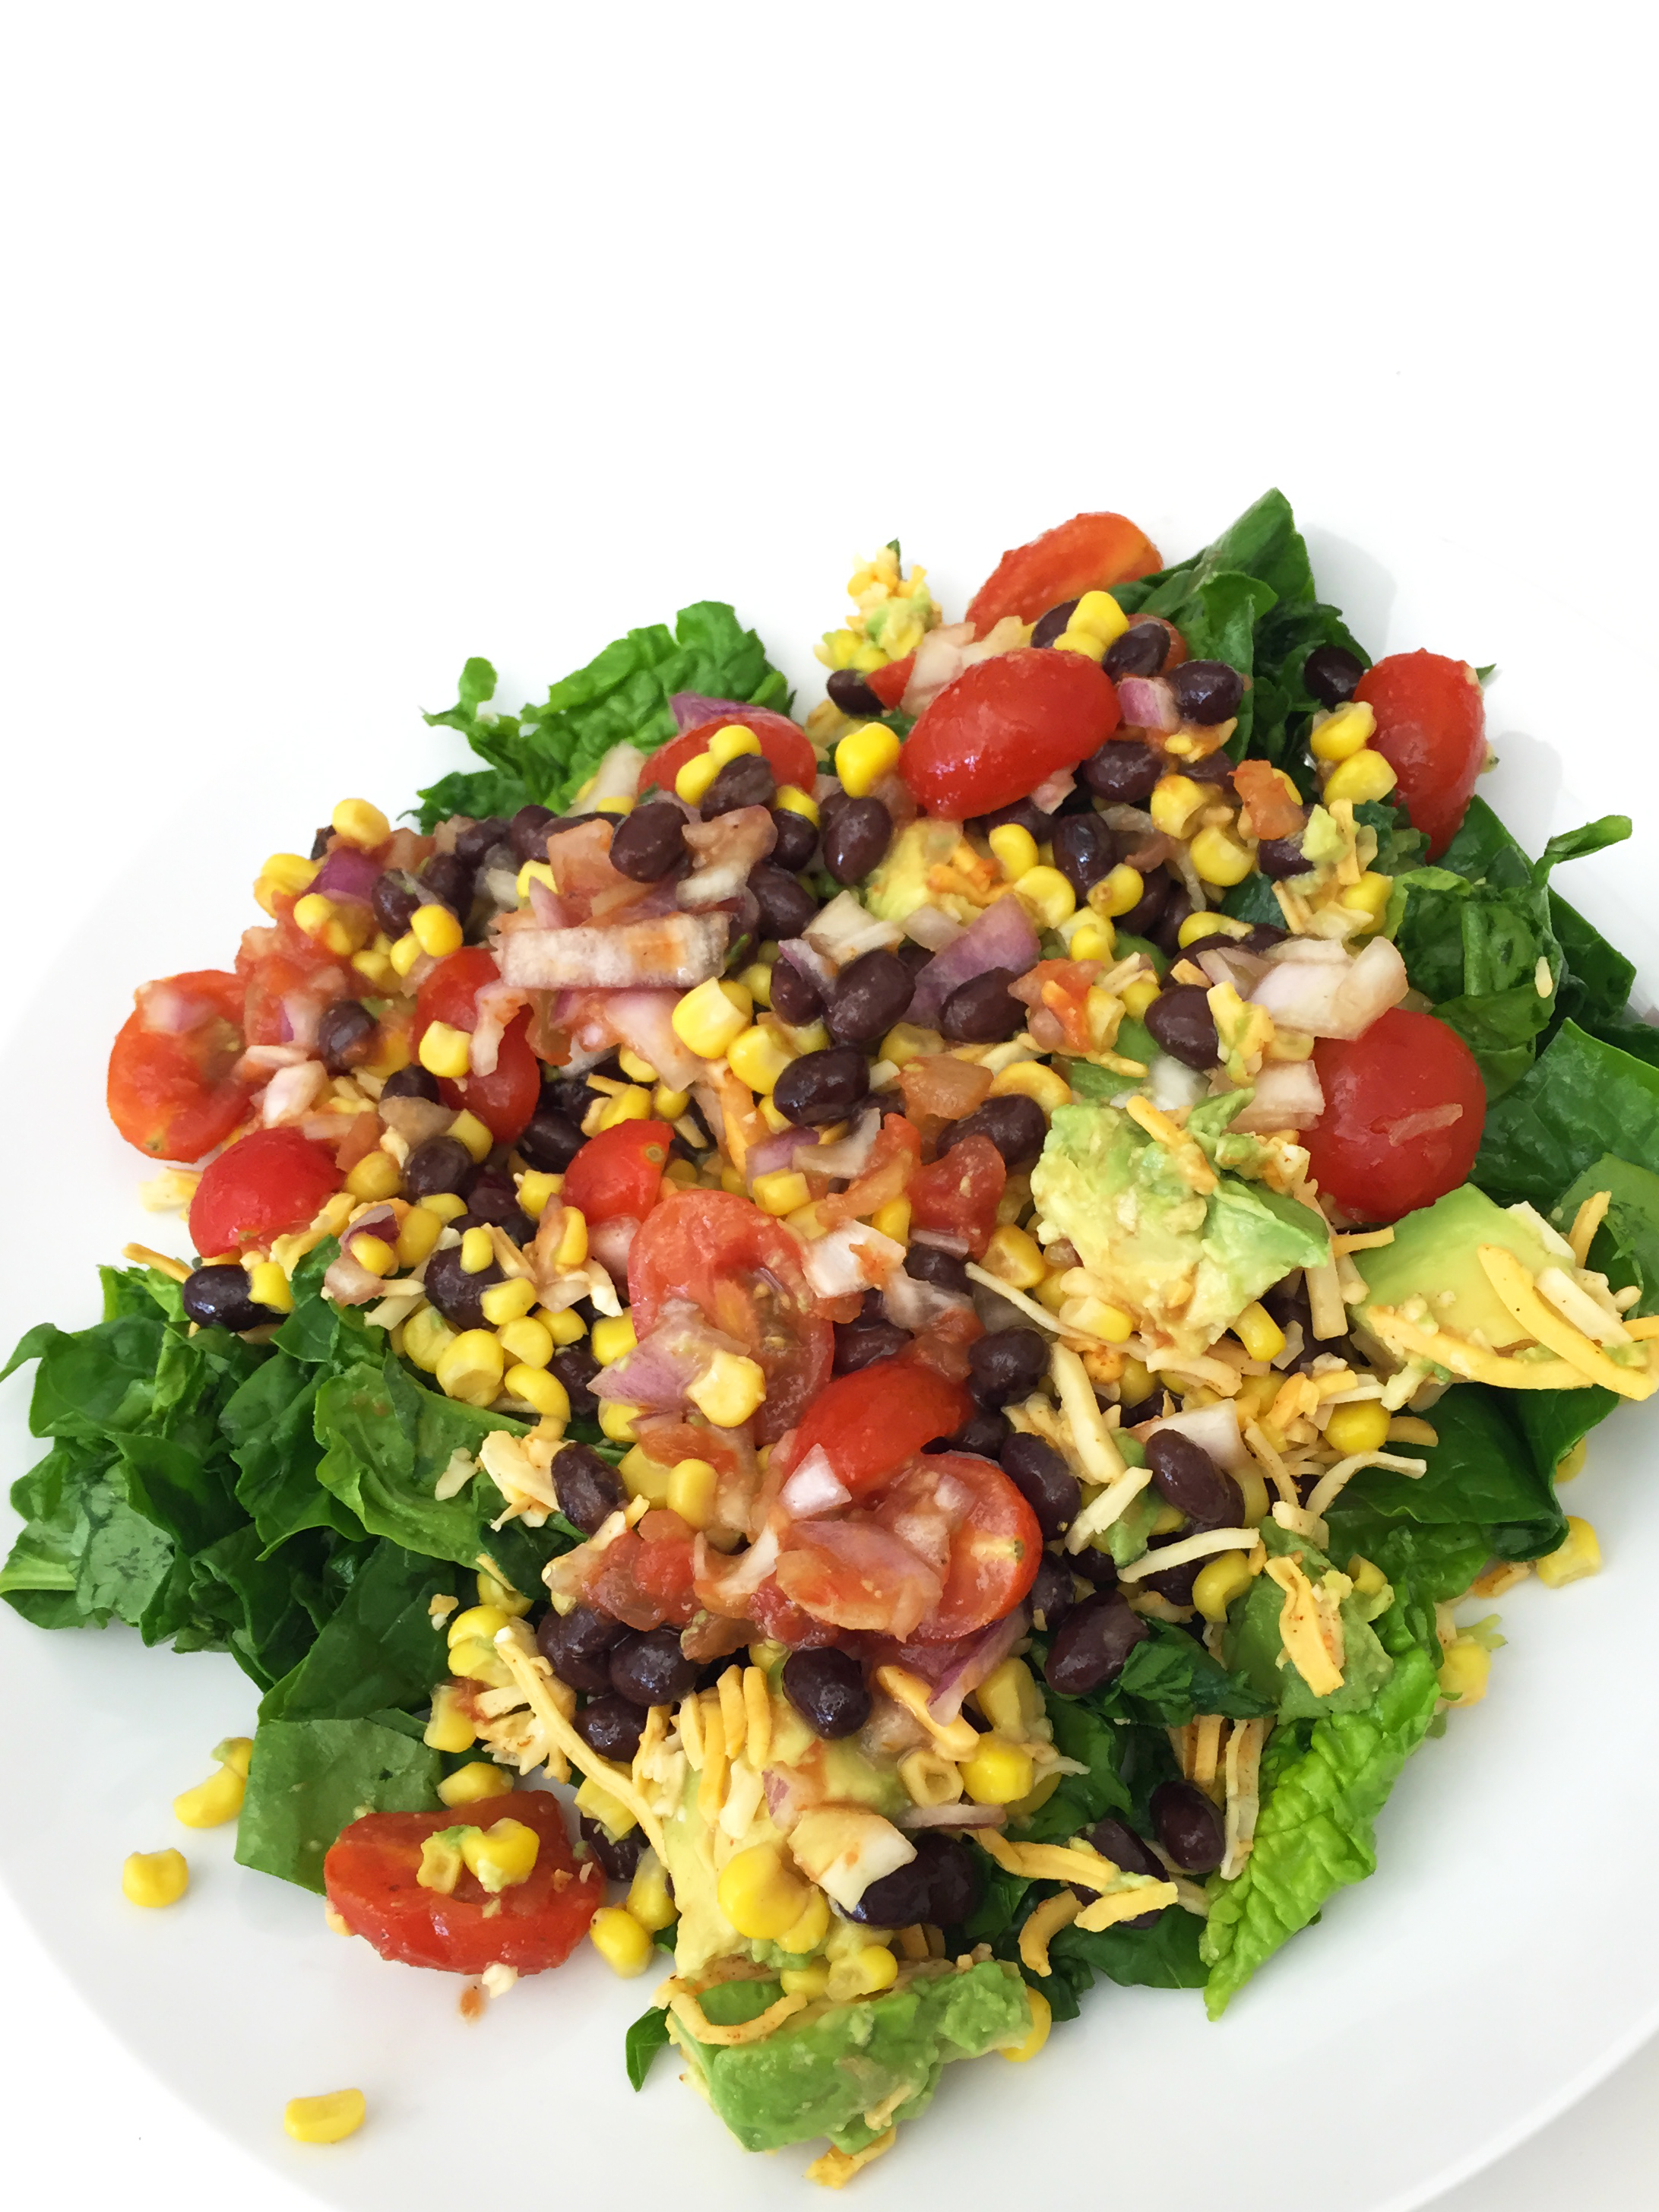 Salsa, tomatoes, red onion, corn, black beans, cheese, avocado, spinach